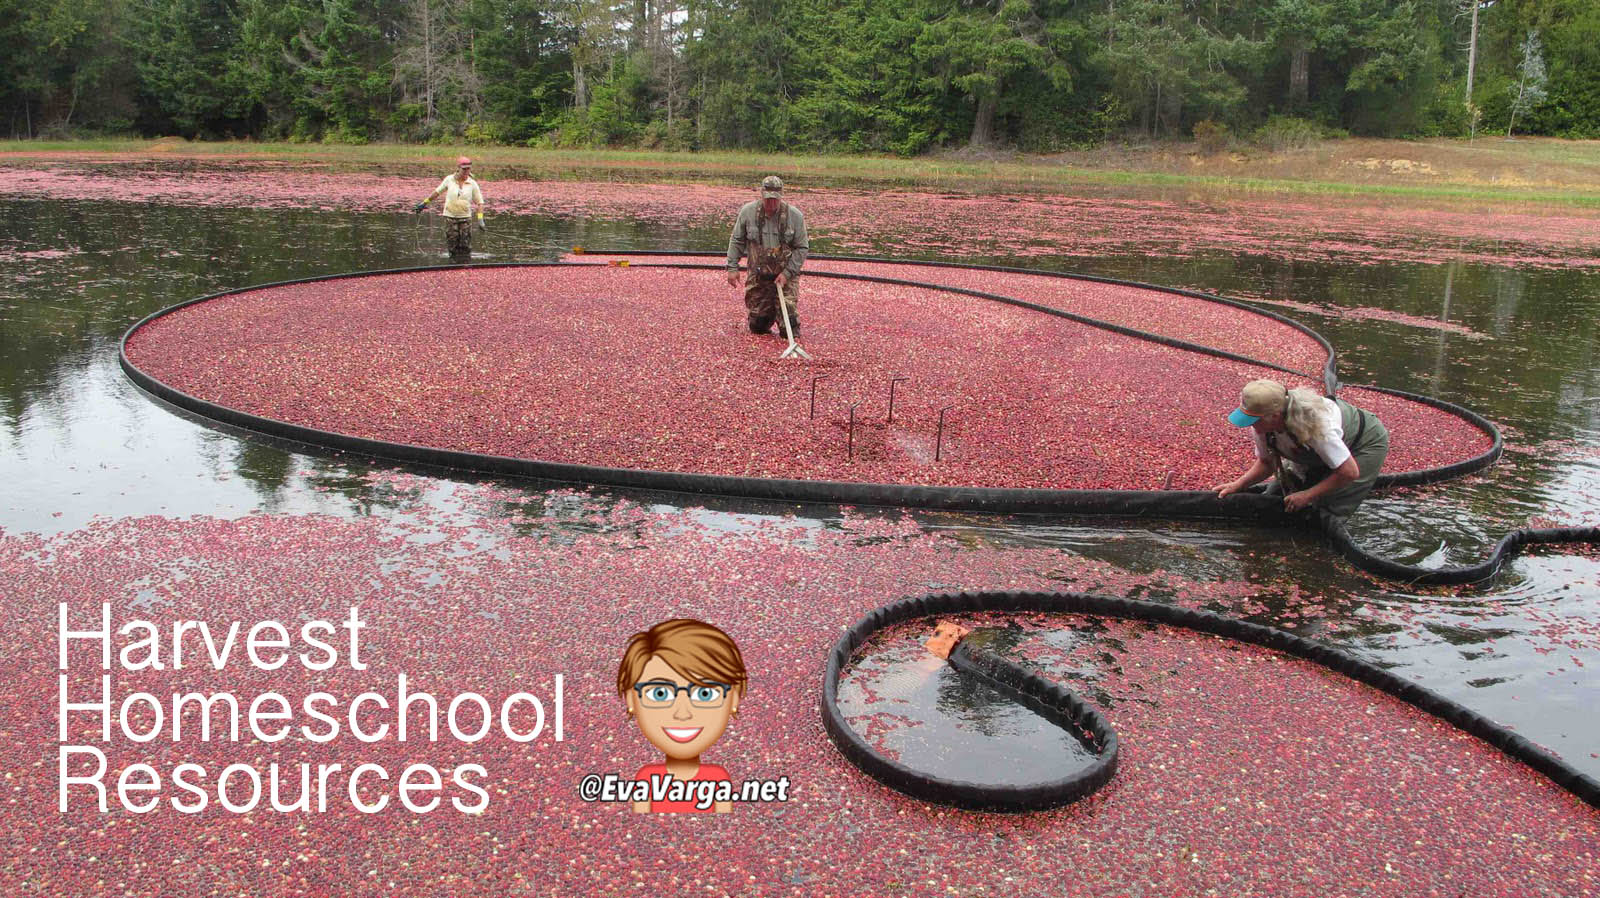 image of a flooded cranberry in midst of harvest with text harvest homeschool resources @EvaVarga.net